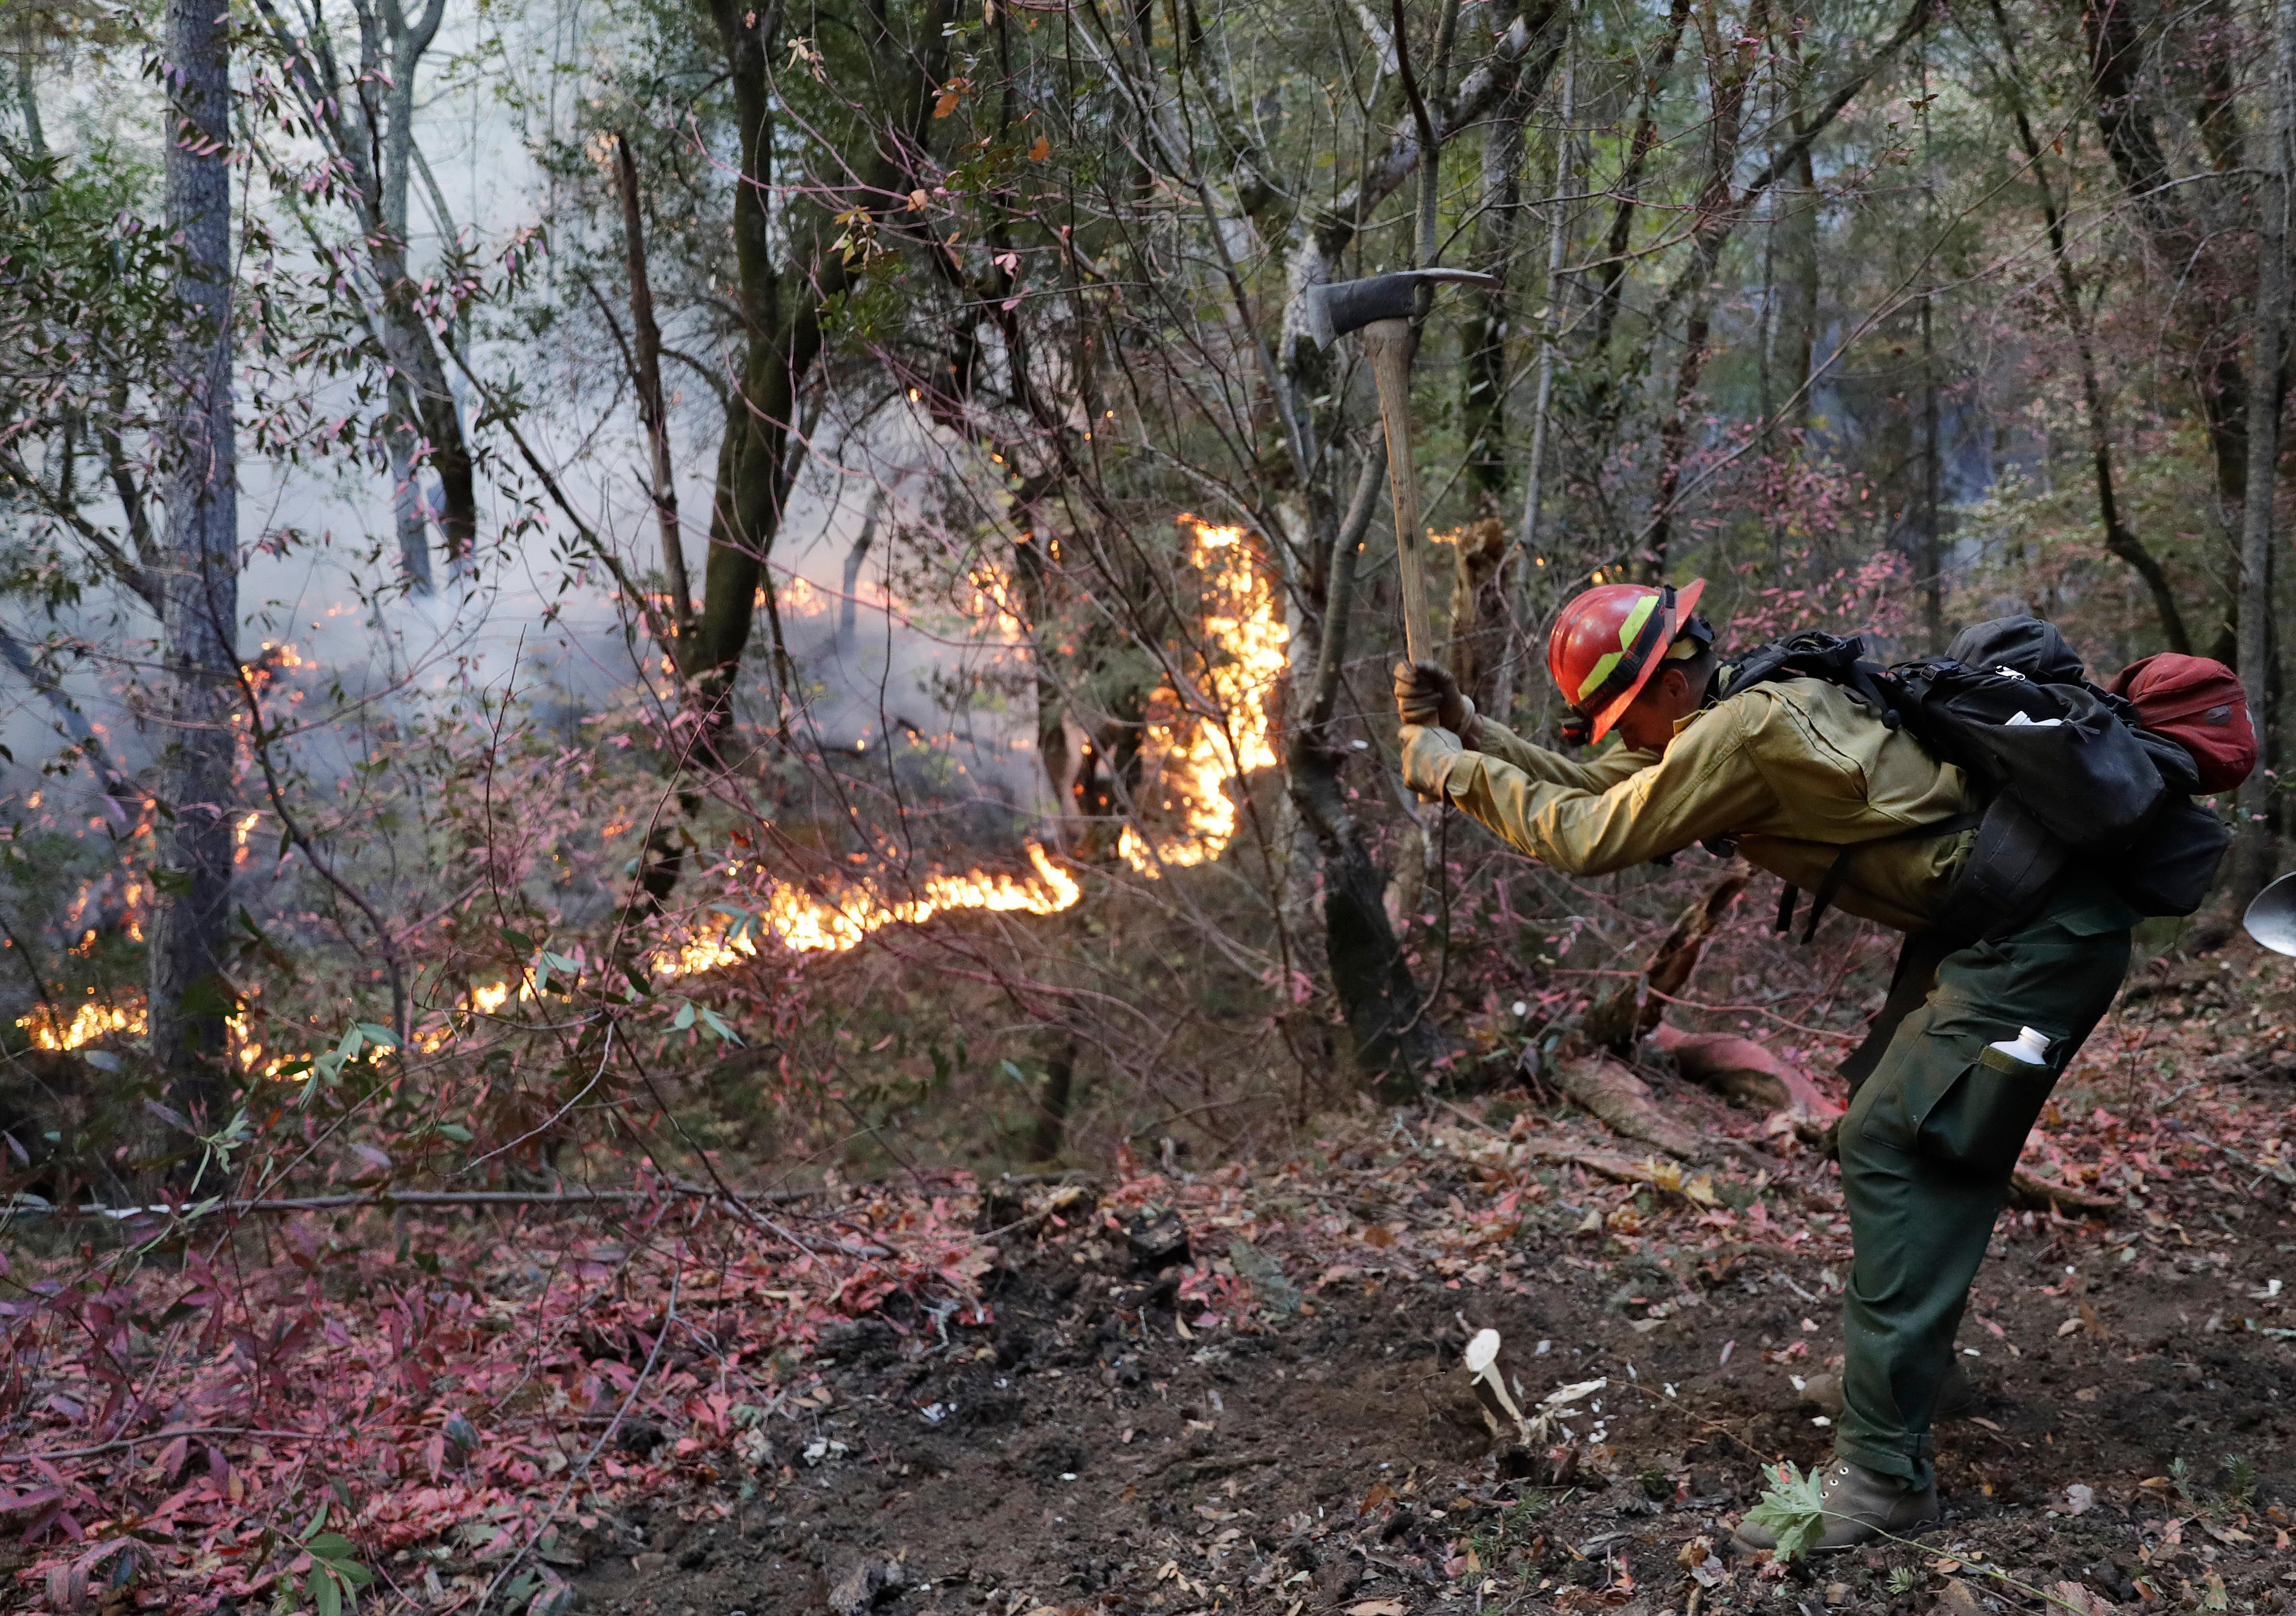 A firefighter cuts fuel from an advancing wildfire Saturday, Oct. 14, 2017, in Santa Rosa, Calif. (AP Photo/Marcio Jose Sanchez)